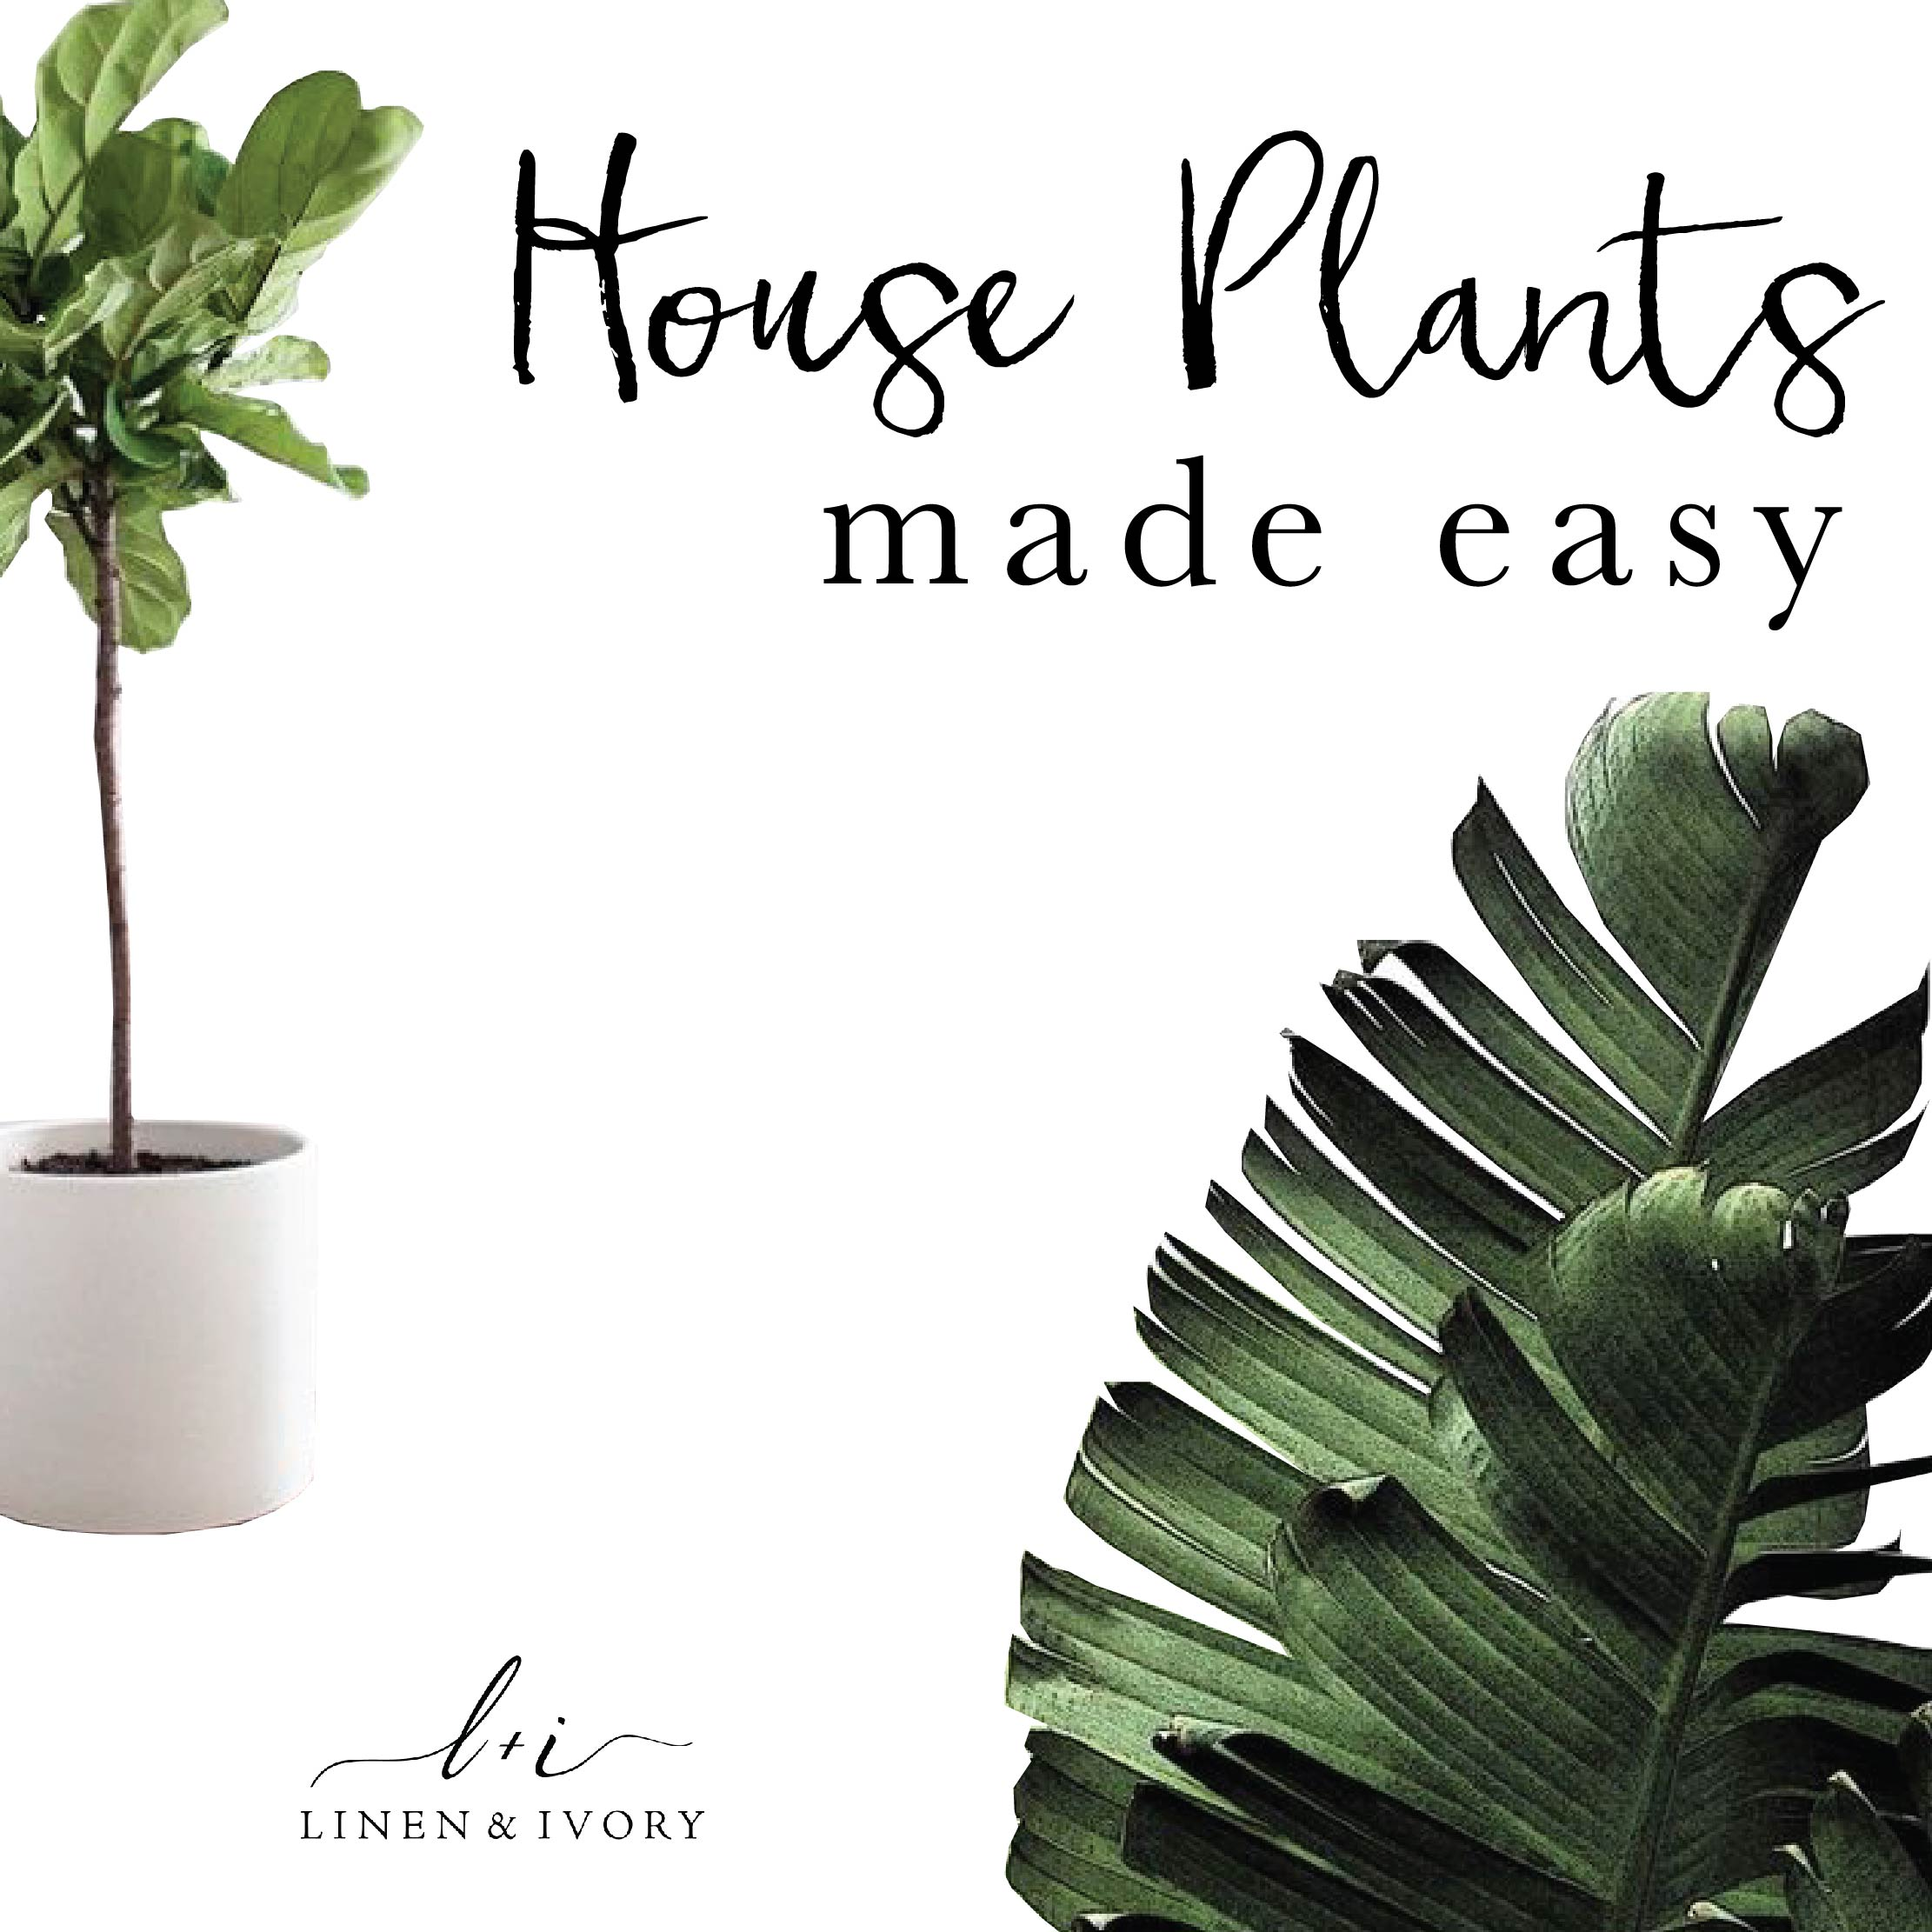 House Plants Made Easy